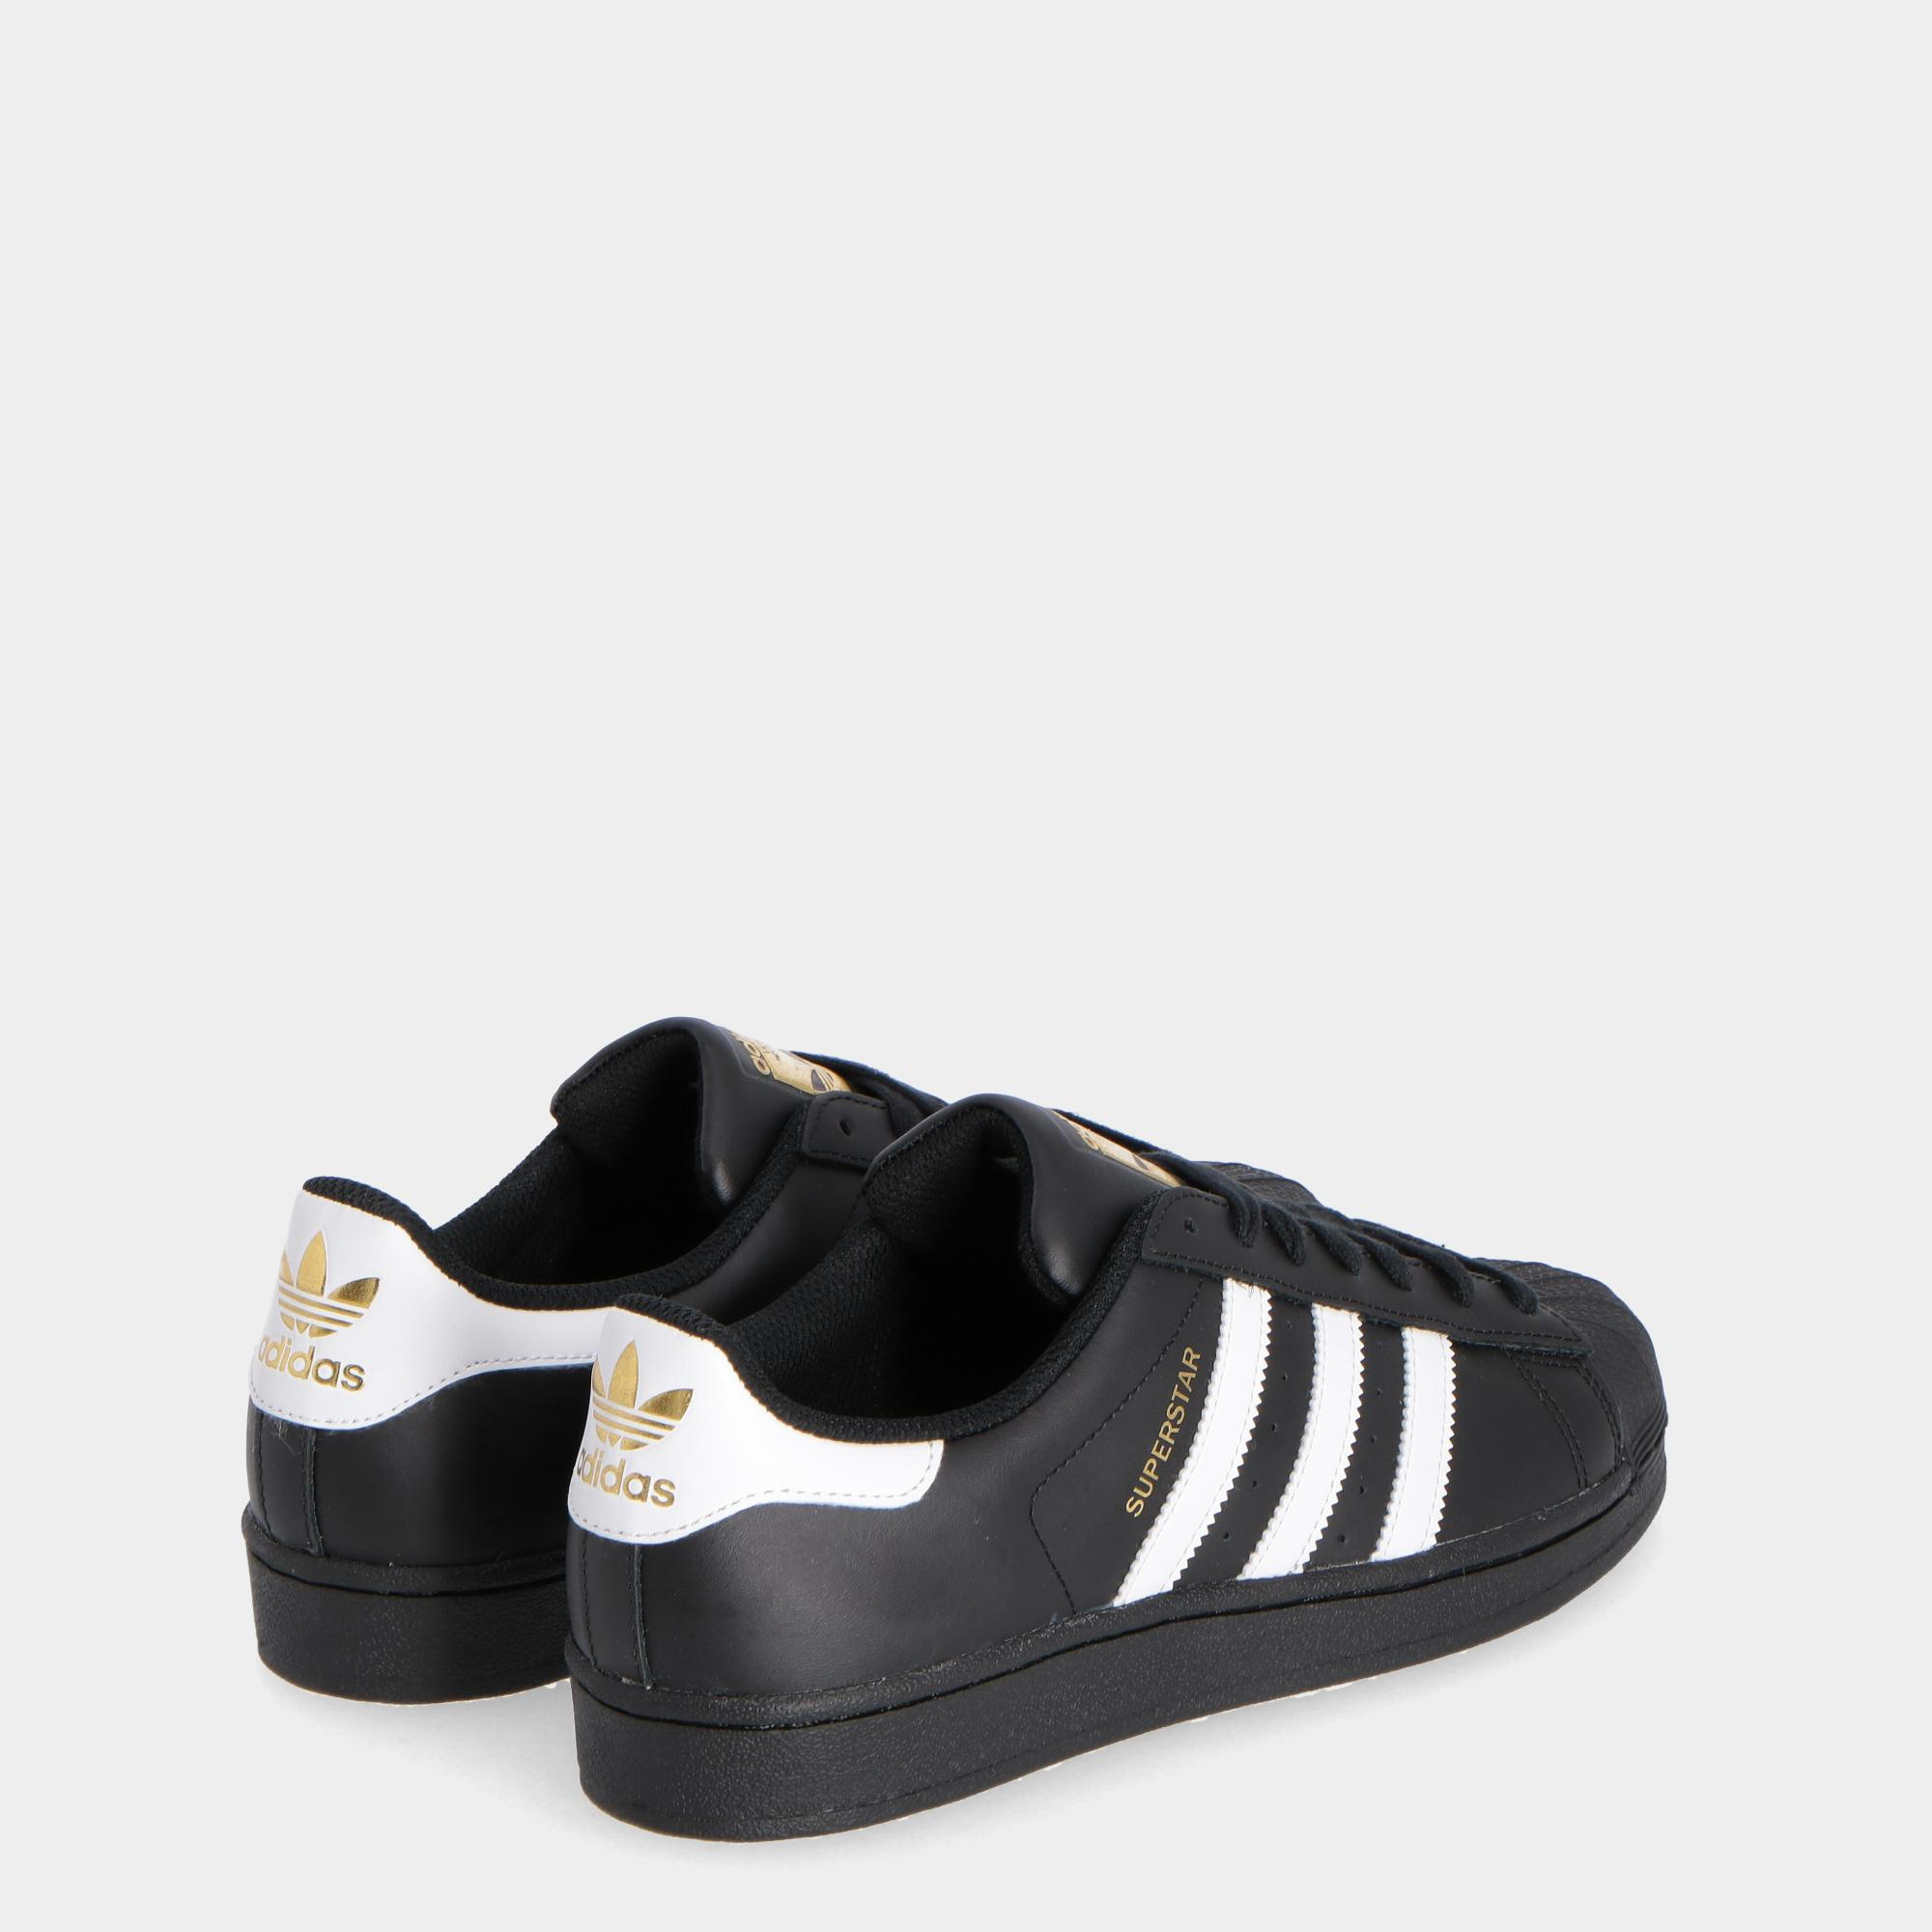 official photos acdc3 ecded ADIDAS SUPERSTAR FOUNDATION